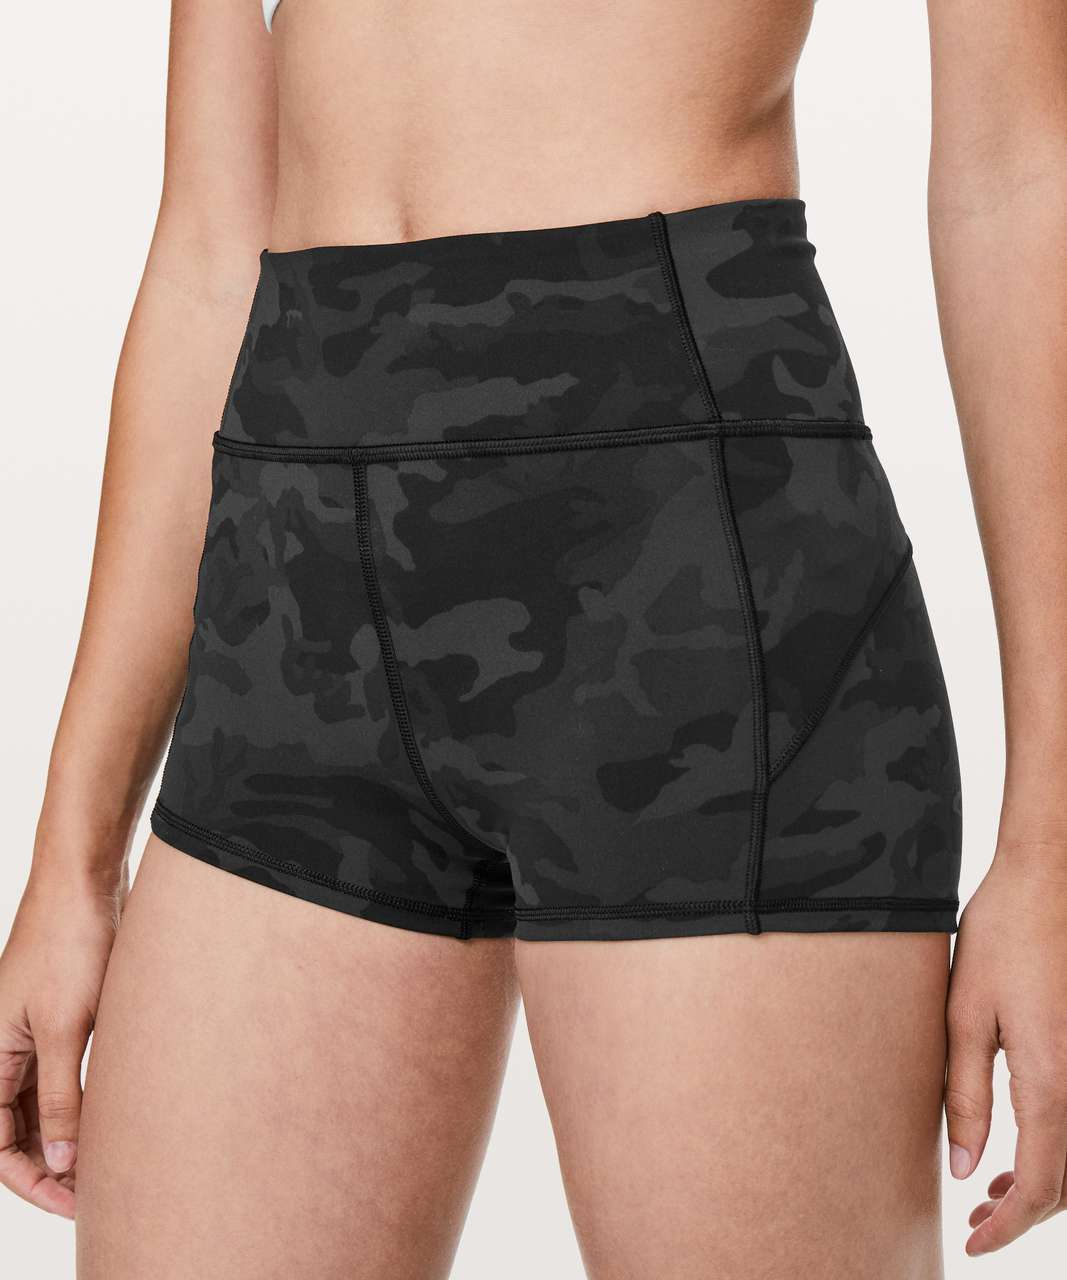 "Lululemon In Movement Short *Everlux 2.5"" - Incognito Camo Multi Grey"